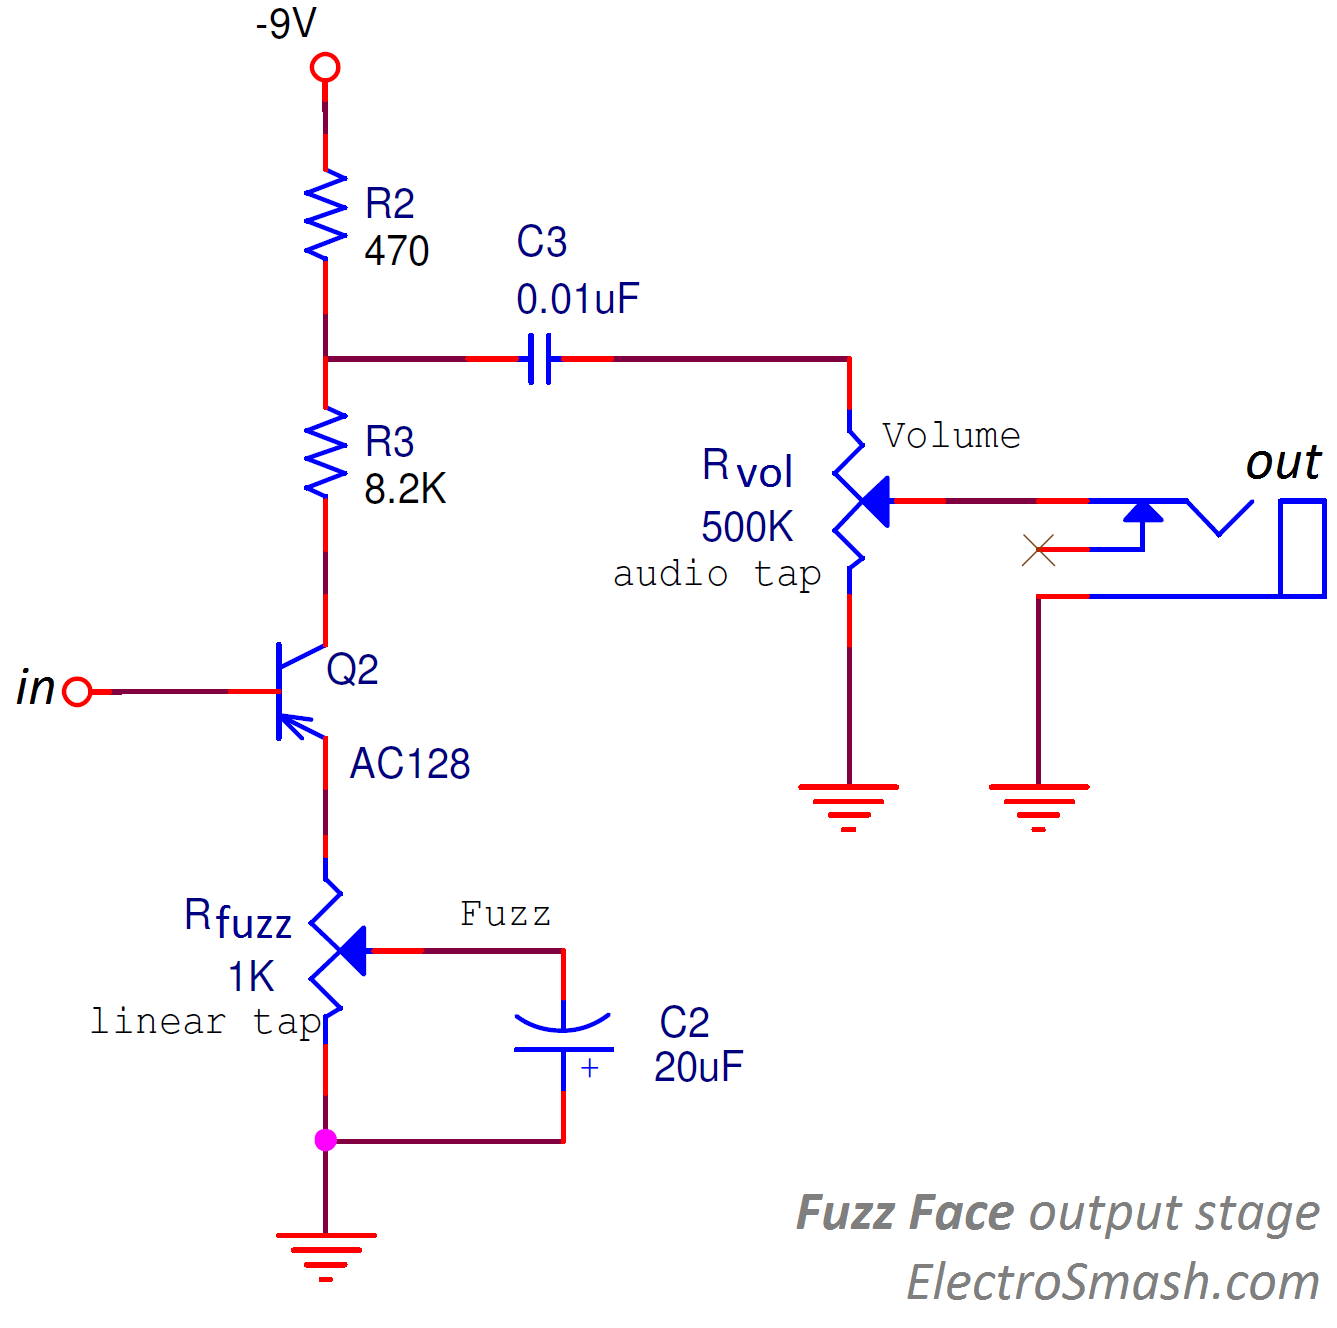 fuzz face output stage